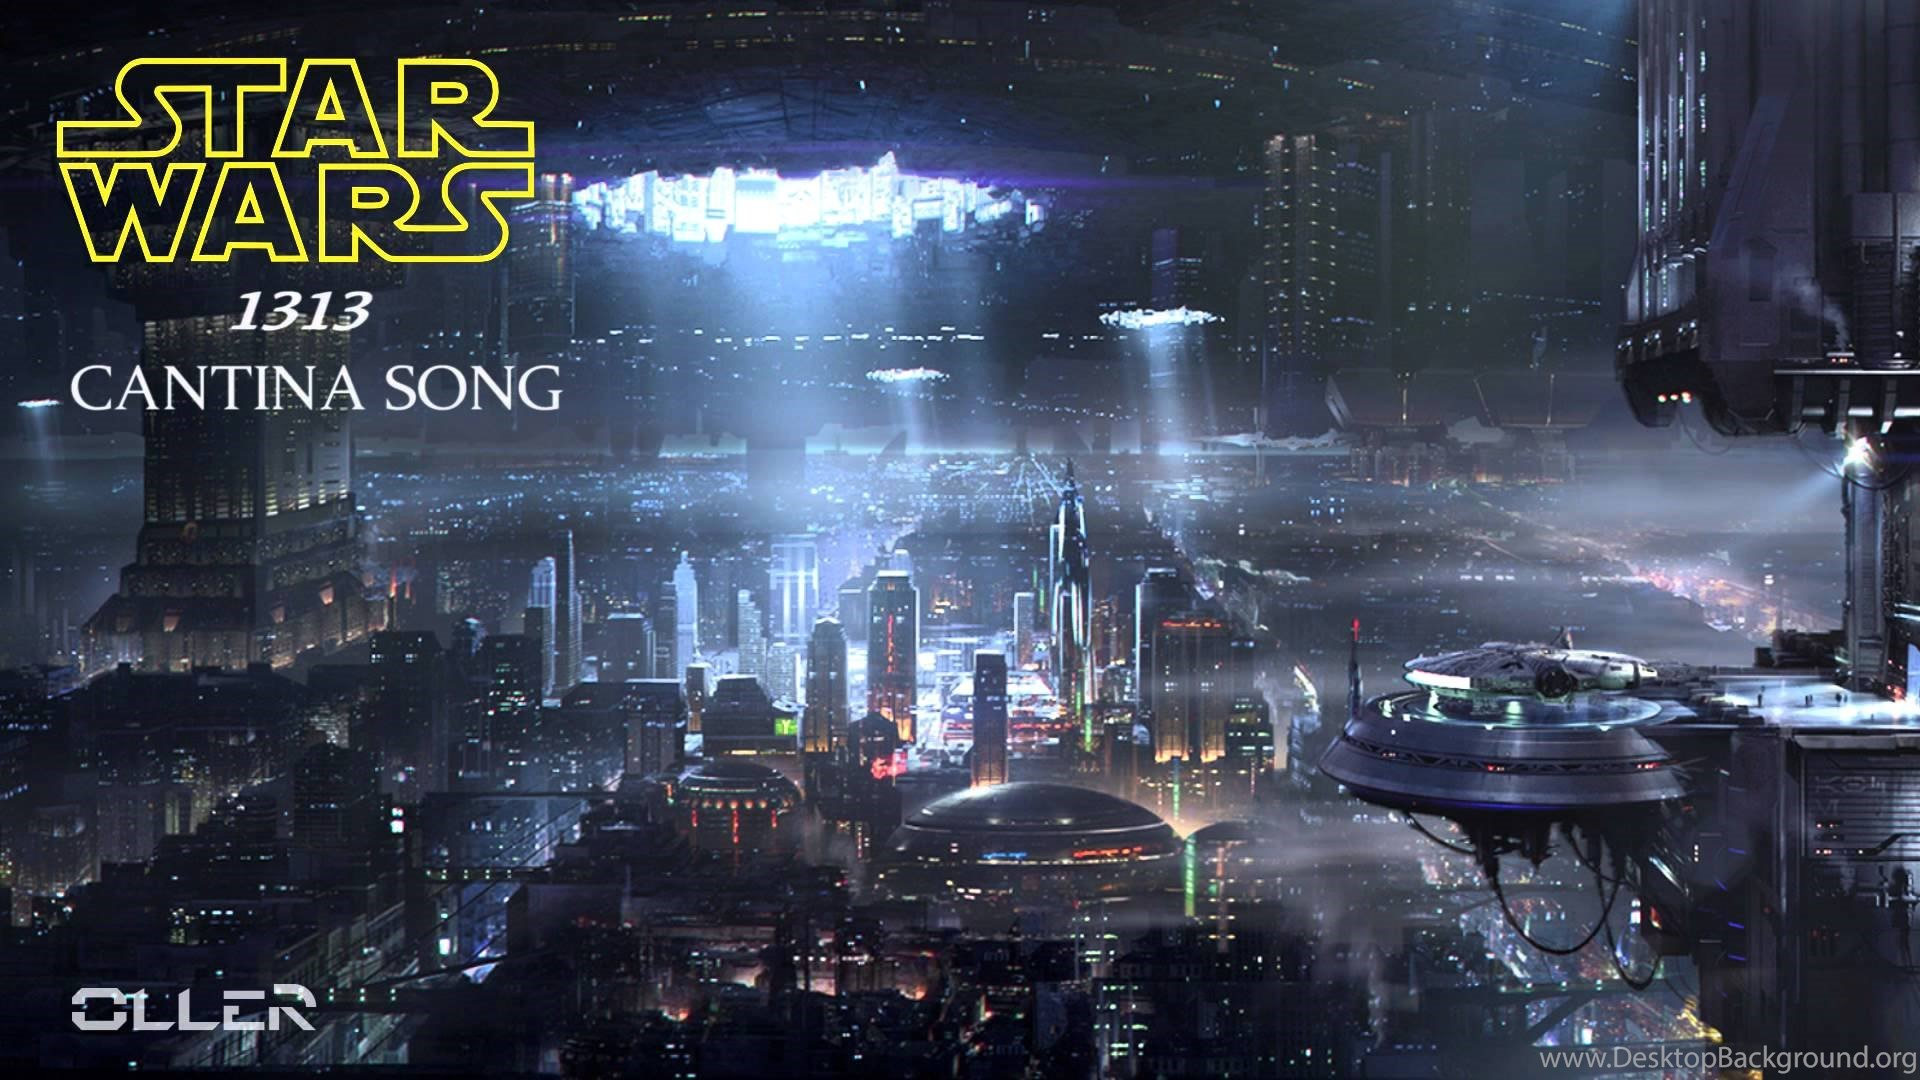 Star Wars 1313 Cantina Song Fan Made By Oller Youtube Desktop Background